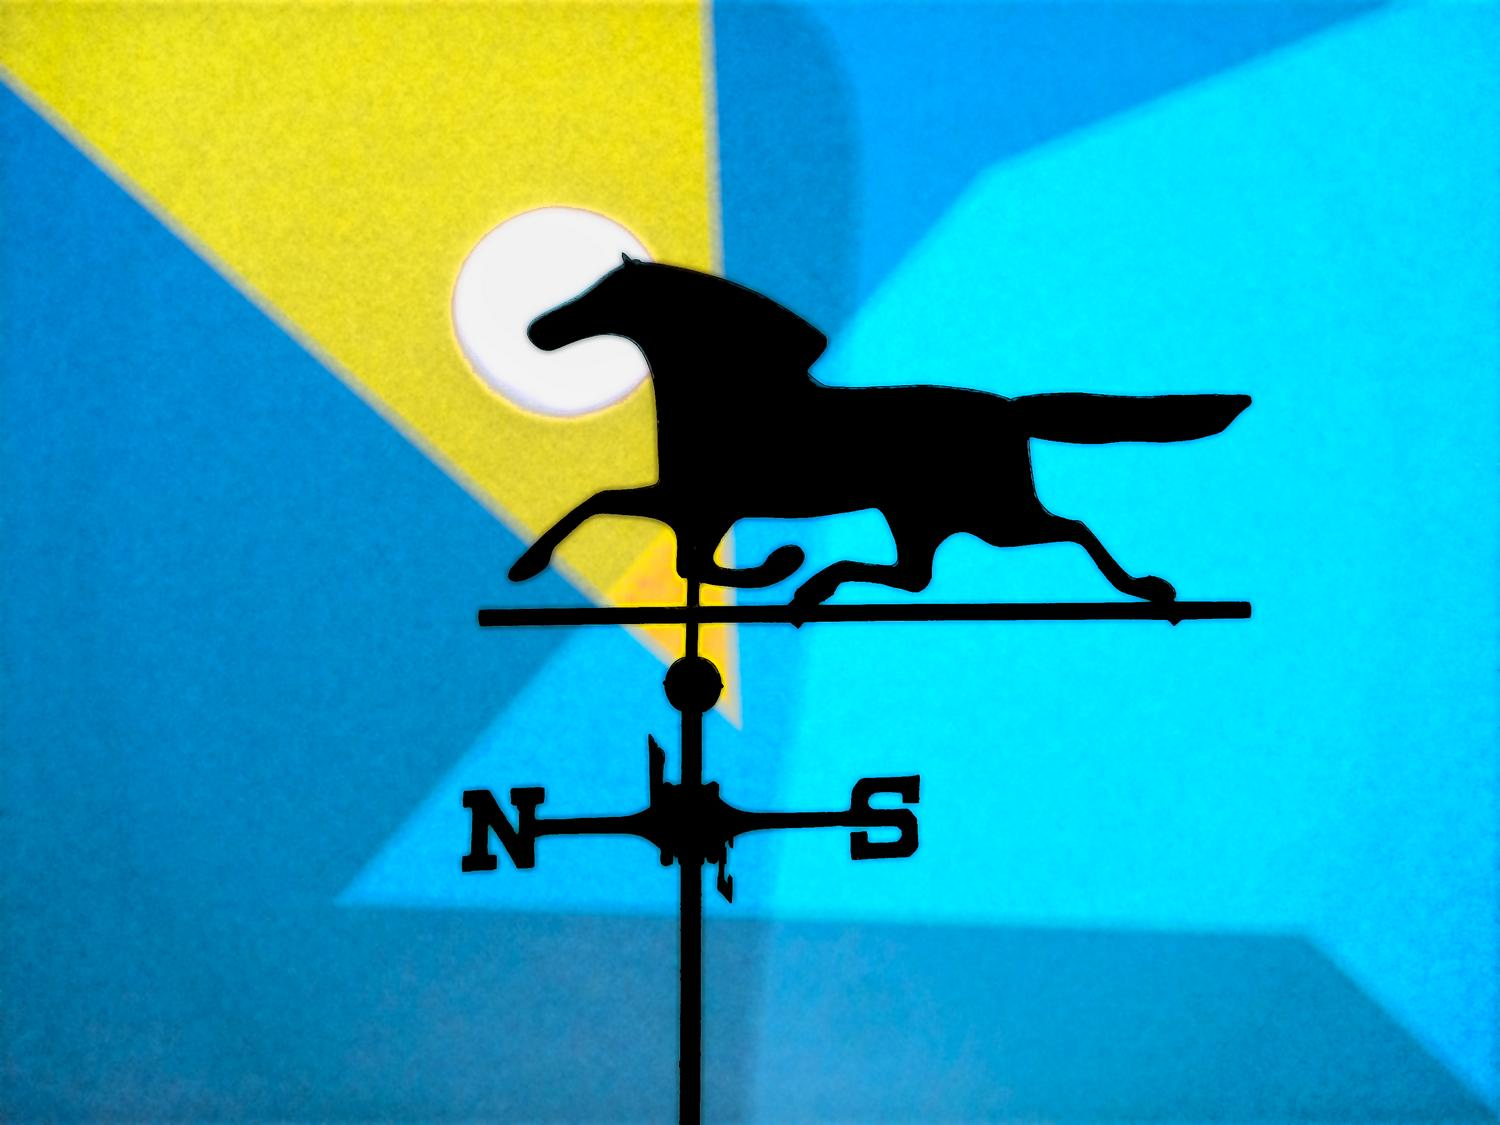 weathervane other the artist's studio done in the style of Feininger - Ode to Feininger #2 - Techno-Impressionist Museum - Techno-Impressionism - art - beautiful - photo photography picture - by Tony Karp